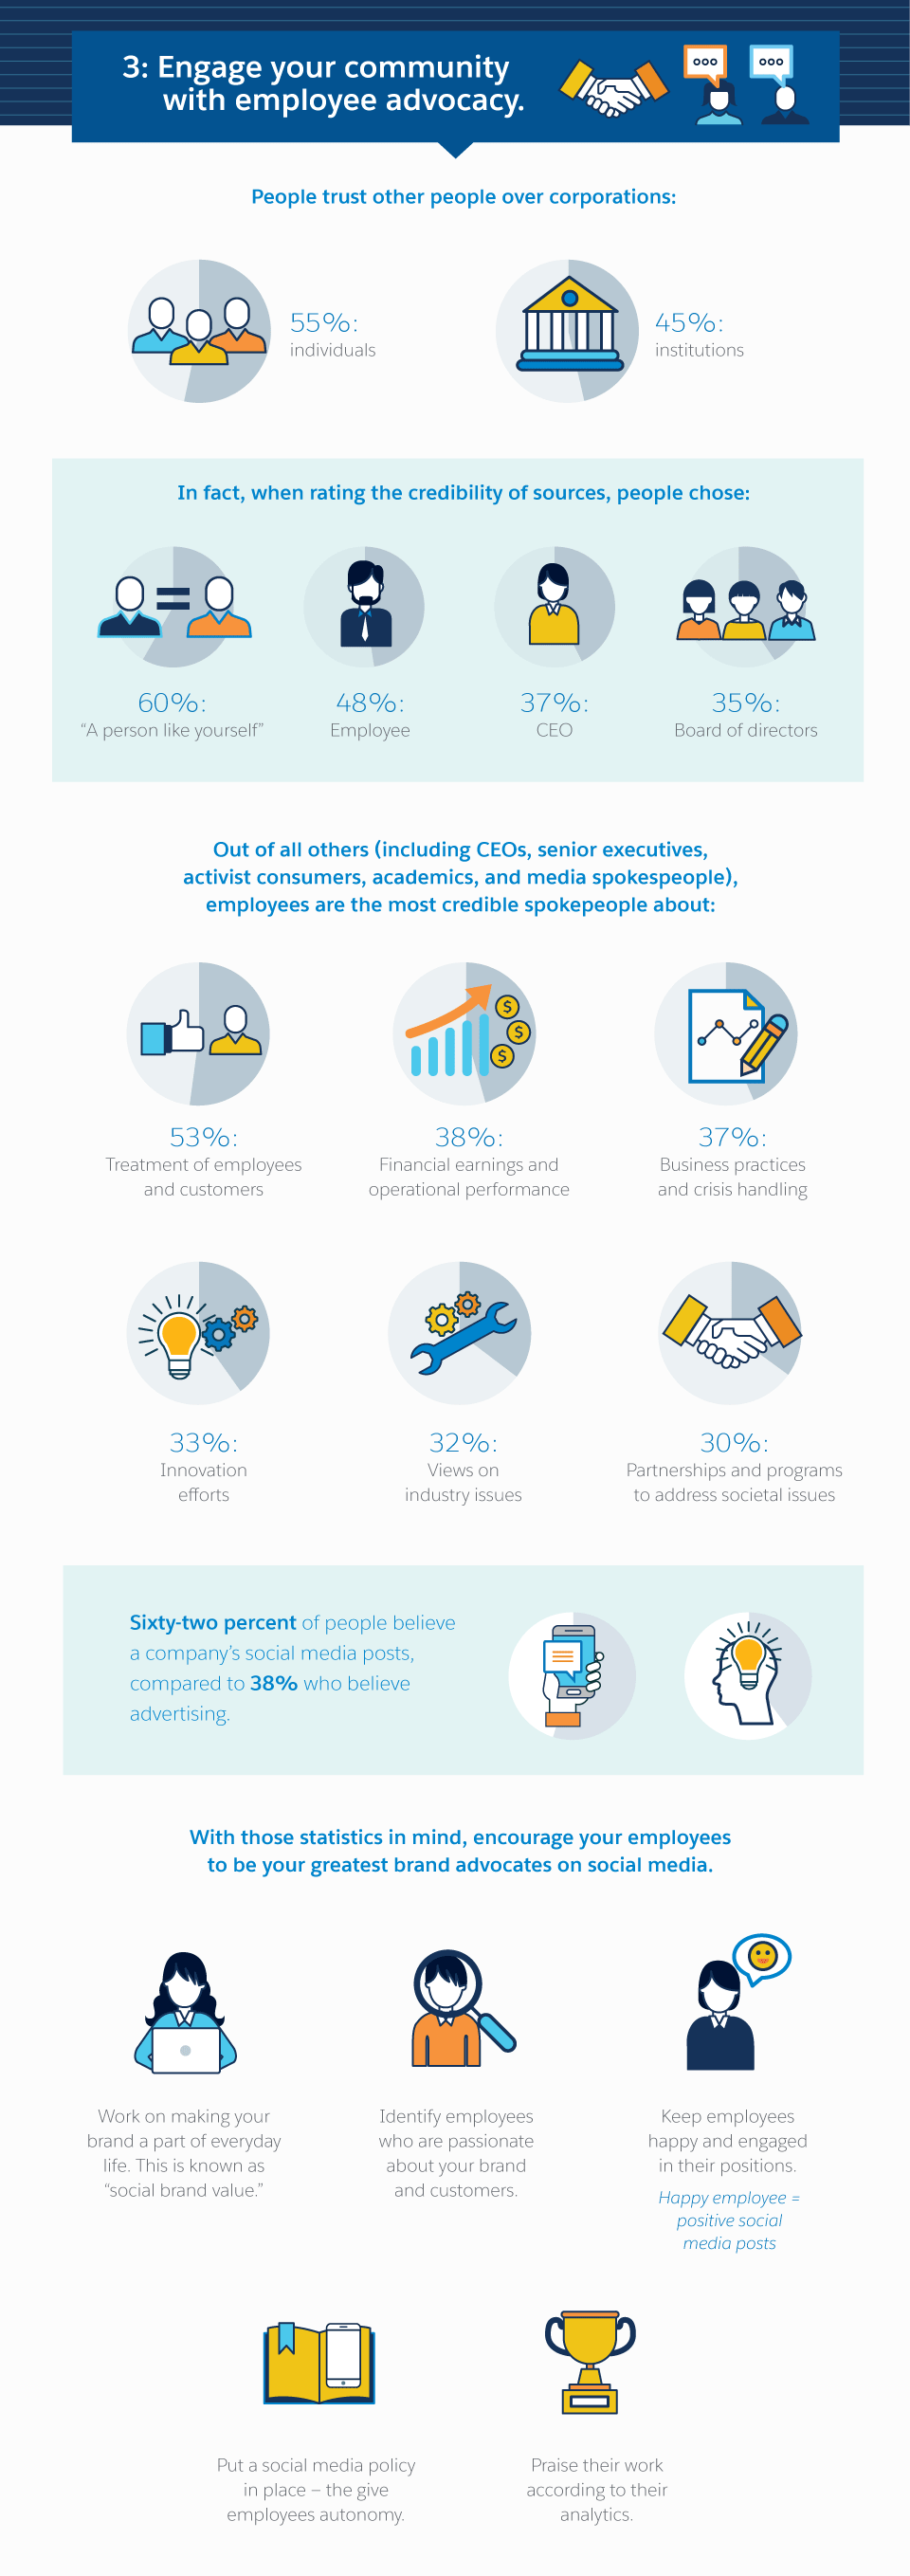 3-the-latest-social-media-marketing-best-practices-you-need-to-know-infographic